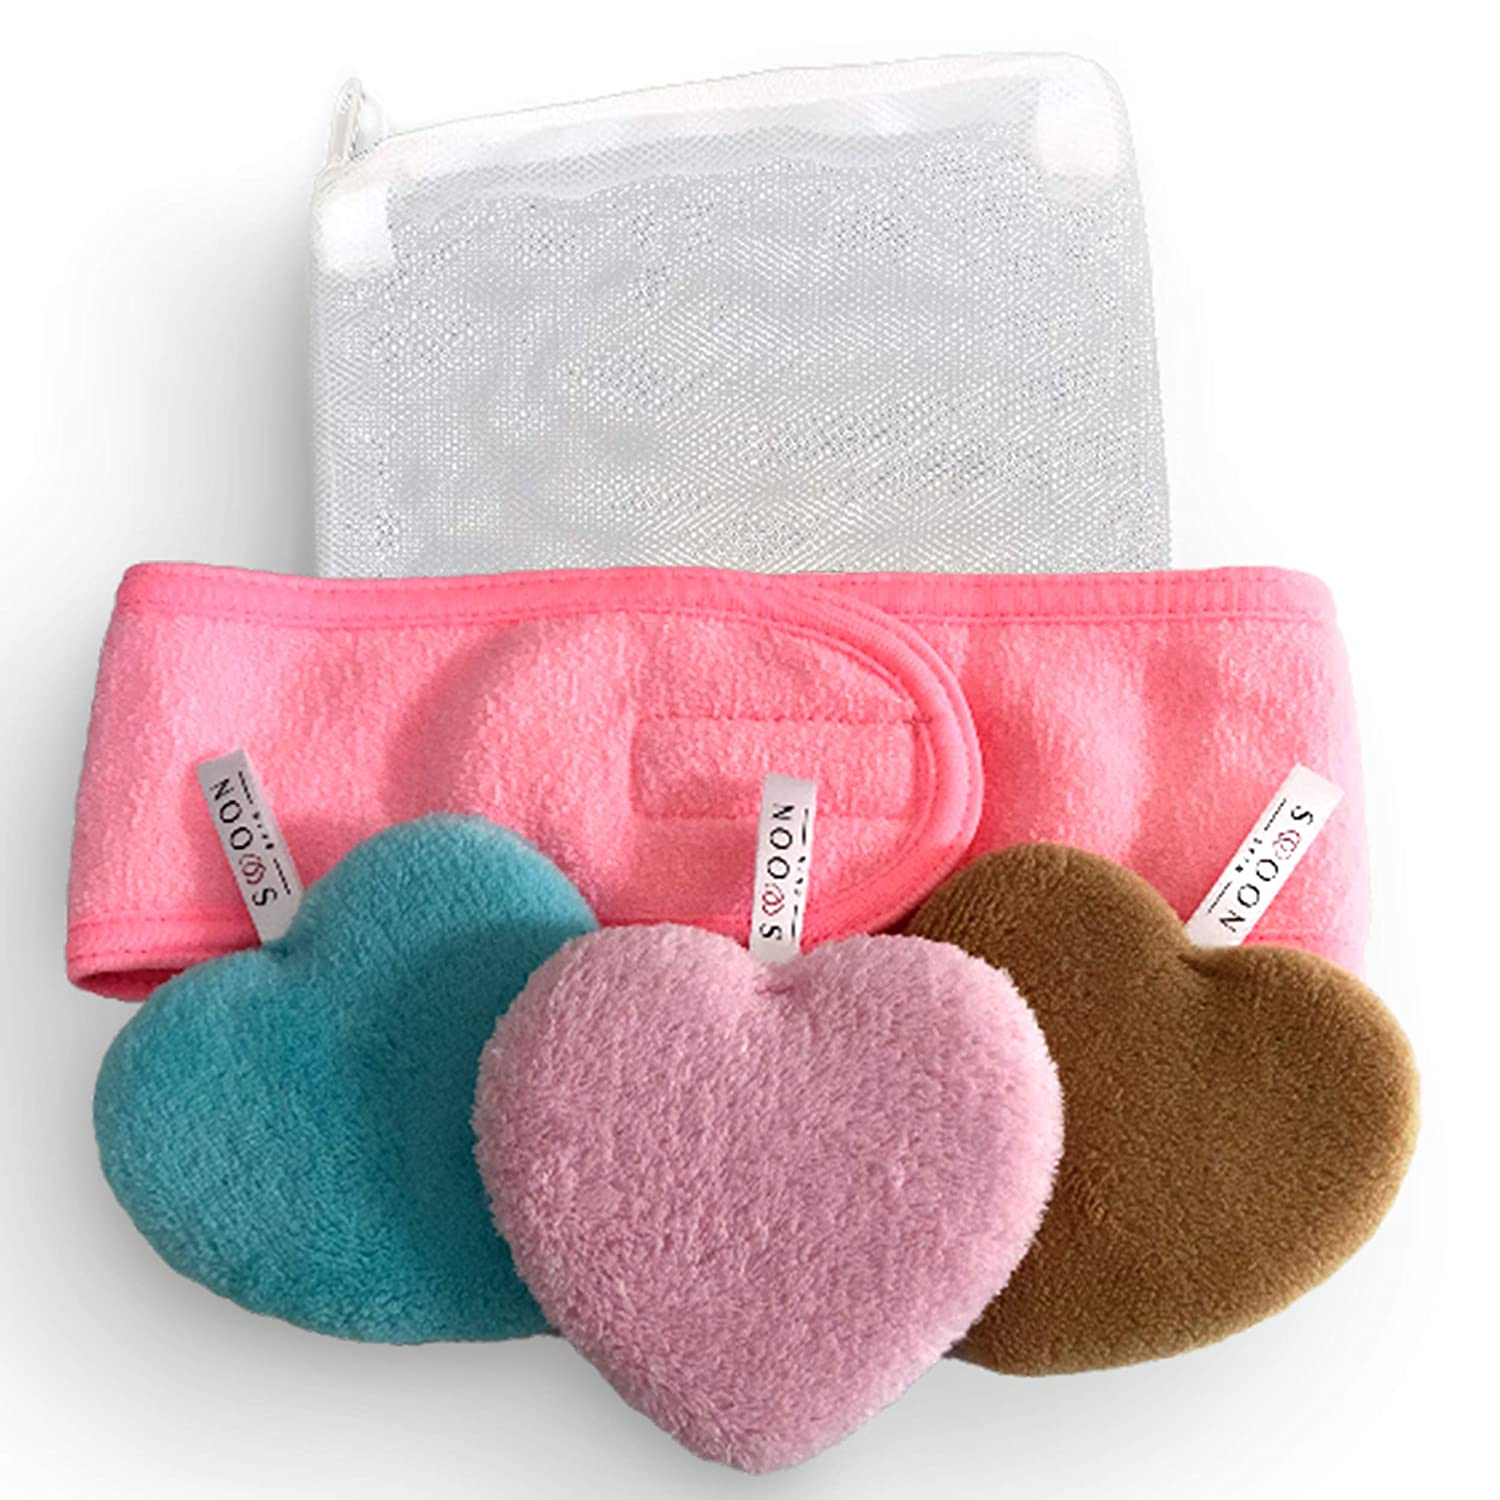 I Heart You Cleansing Kit | Reusable Makeup Remover Pads | Eco Friendly & Zero Waste | Removes all makeup with only water.